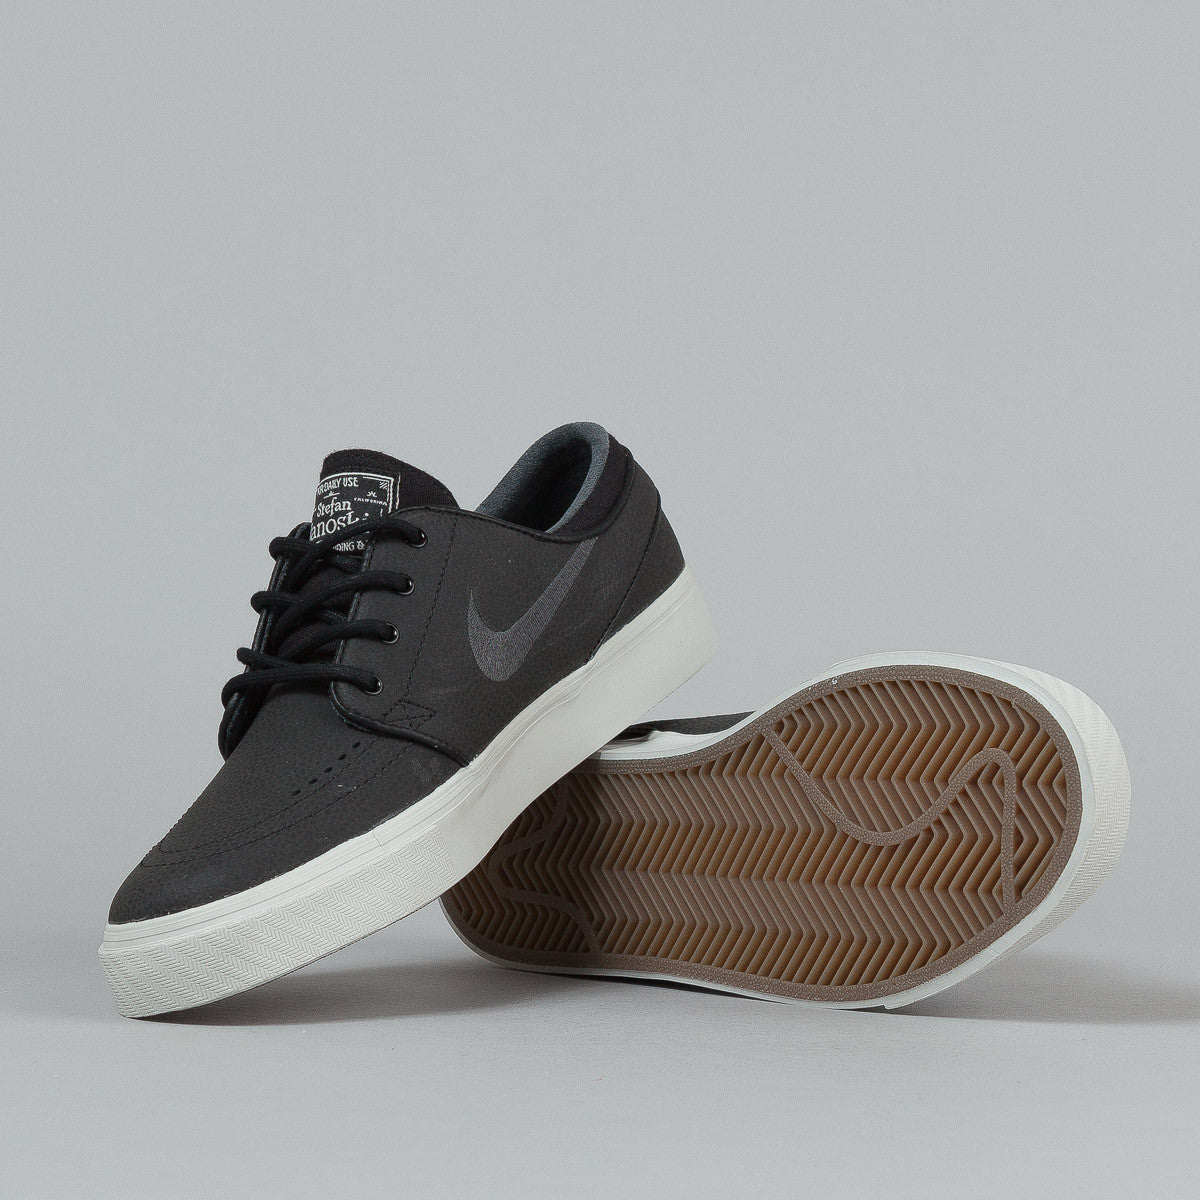 Nike SB Stefan Janoski L Black / Anthracite - Light Gum - Gum Dark Brown